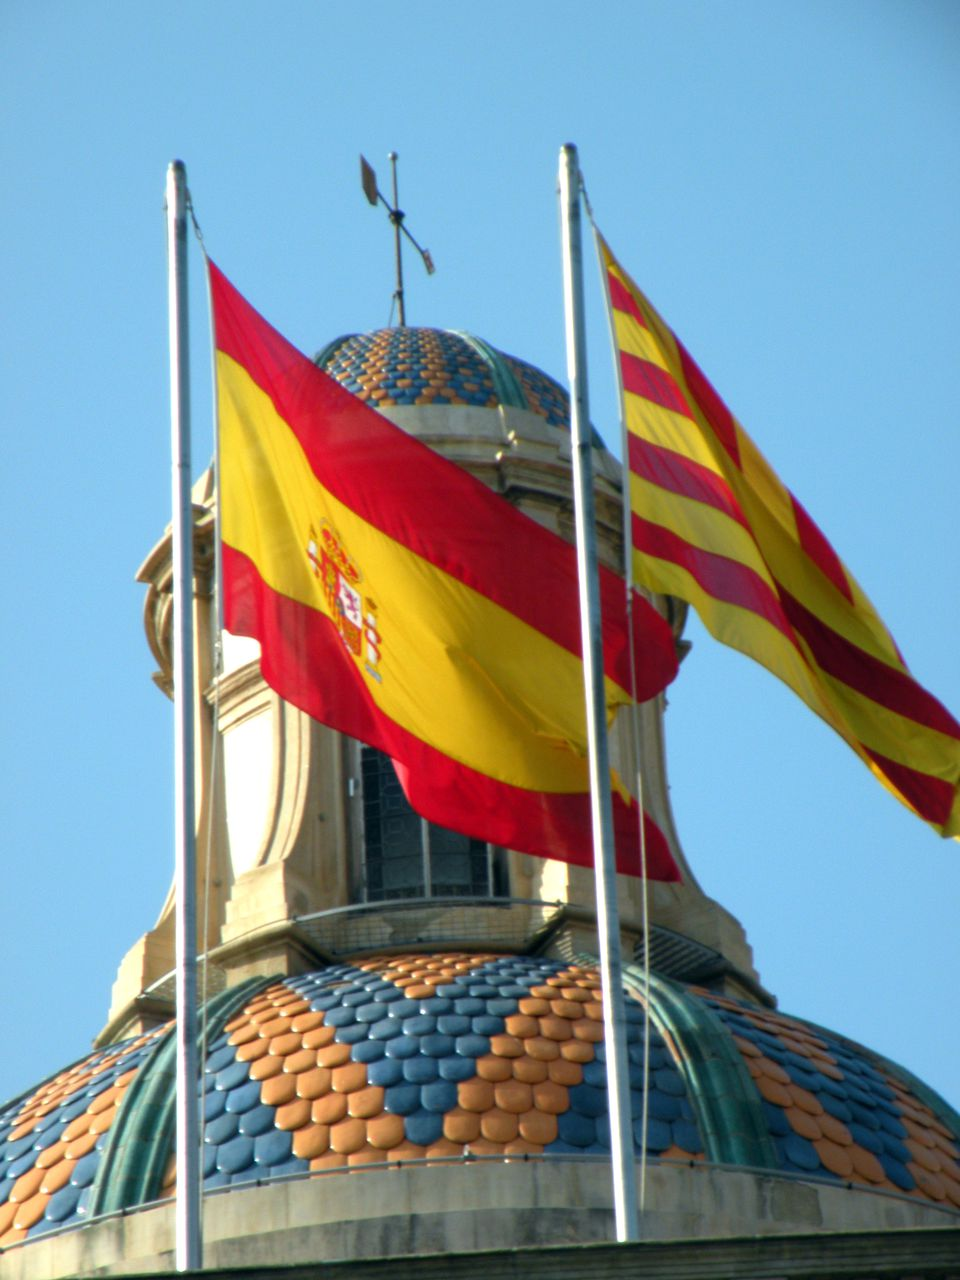 Catalan and Spanish are both official languages of Catalonia in Spain